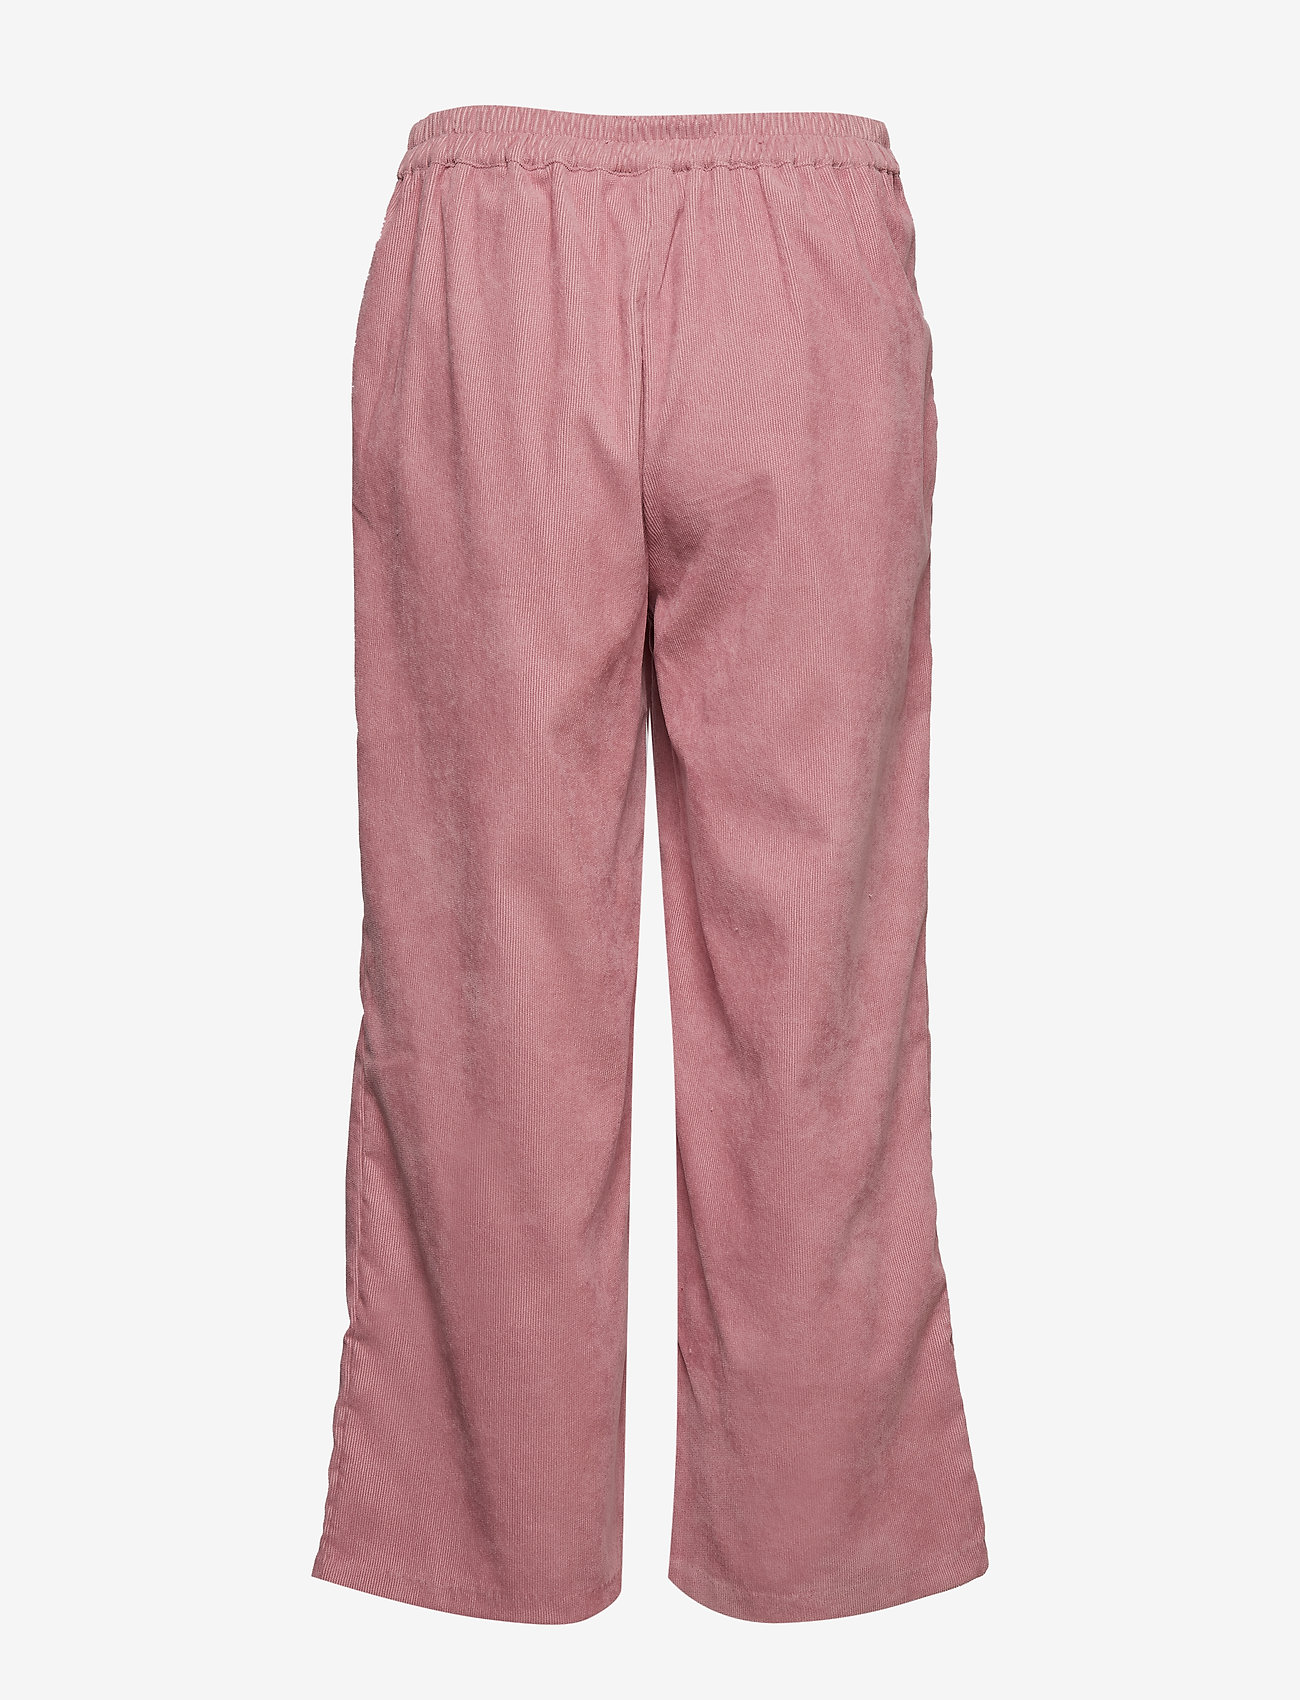 Bxdina Cropped Pants -  - b.young